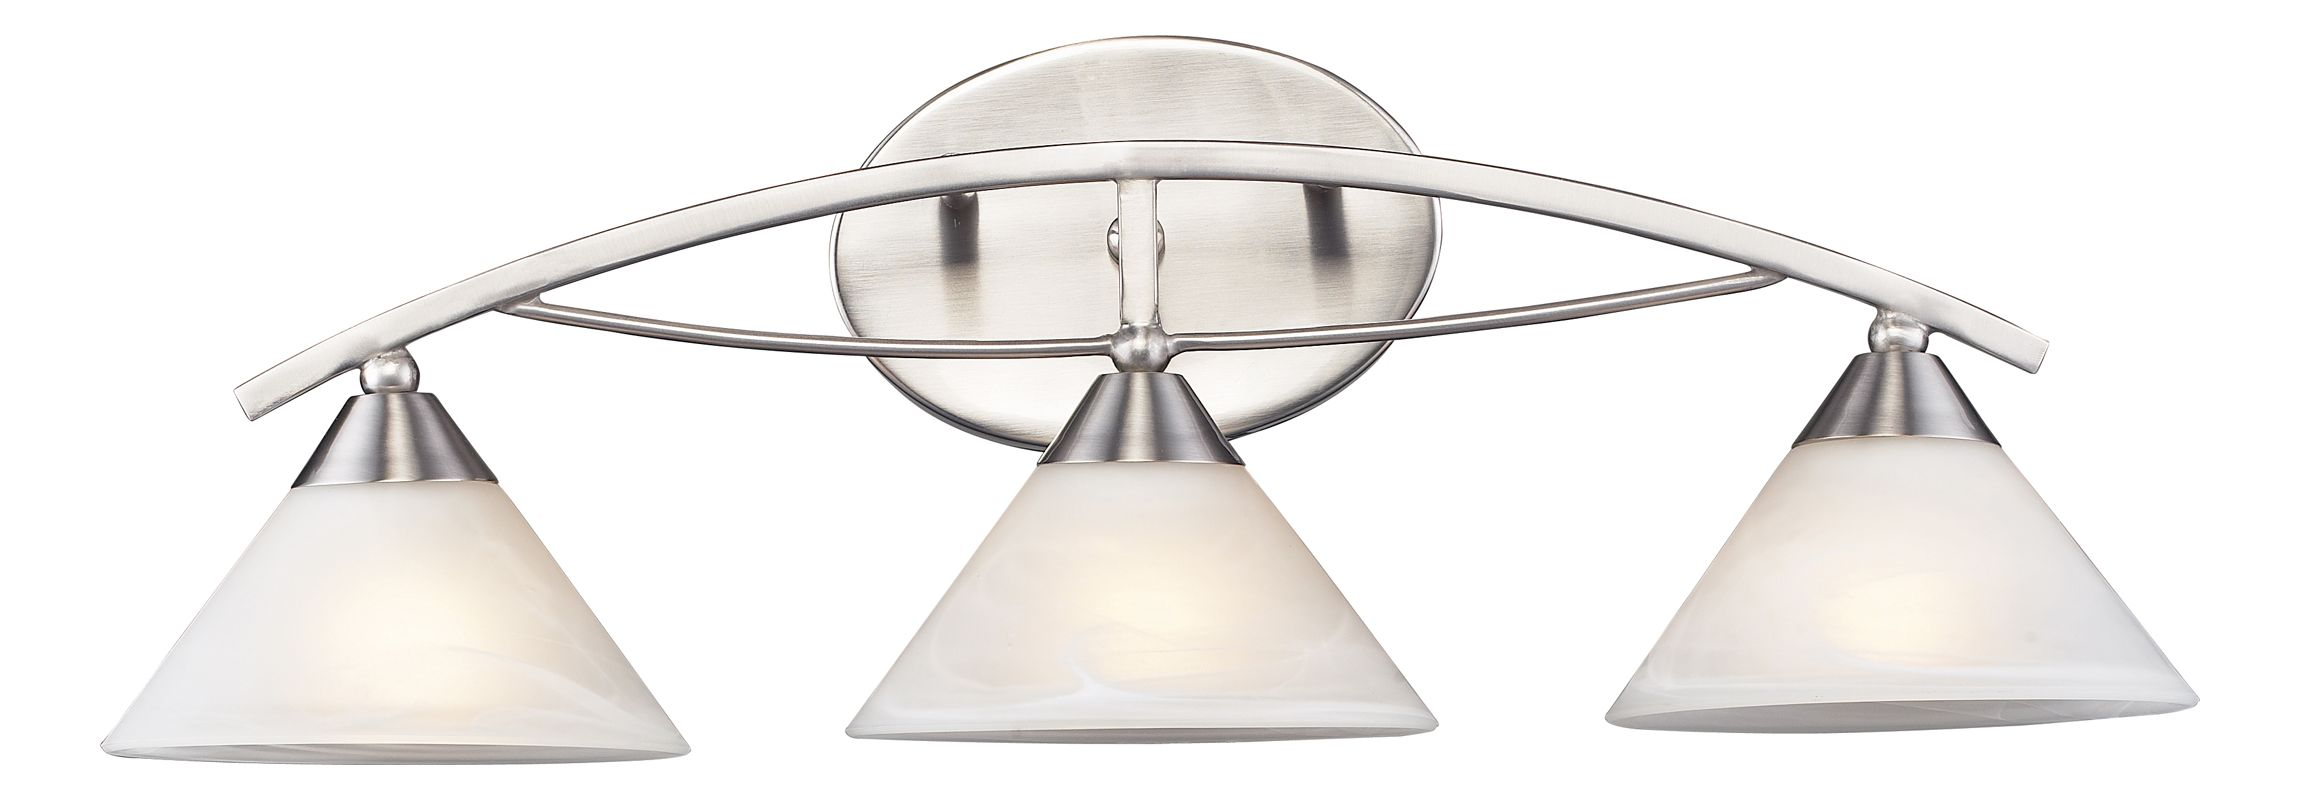 ELK Lighting 7632/3 Elysburg 3 Light Wall Sconce Satin Nickel Indoor